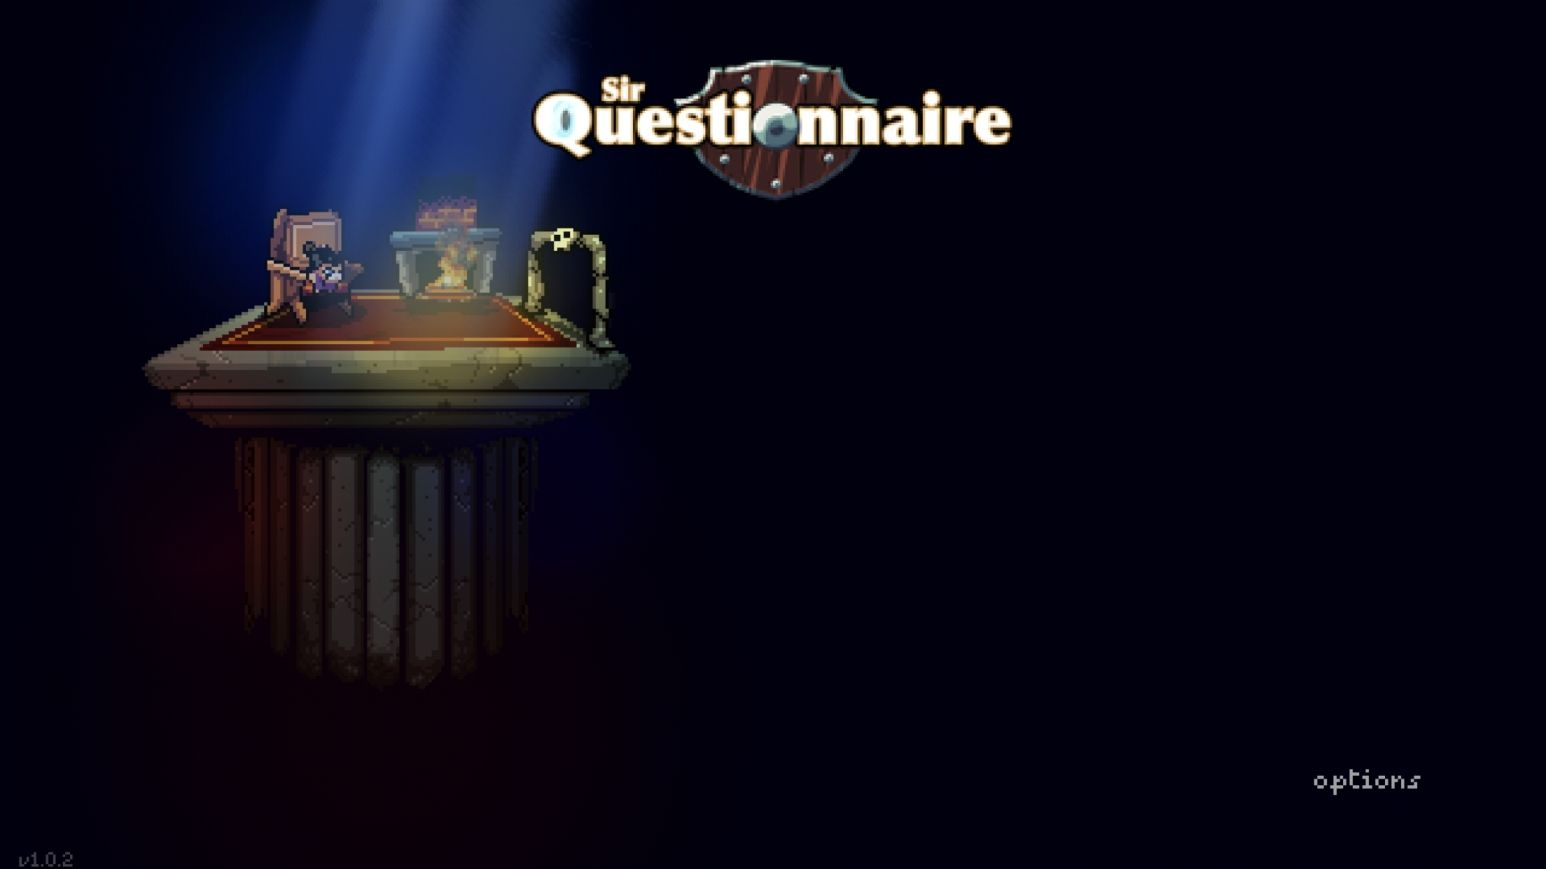 Sir Questionnaire (copie d'écran 1 sur iPhone / iPad)